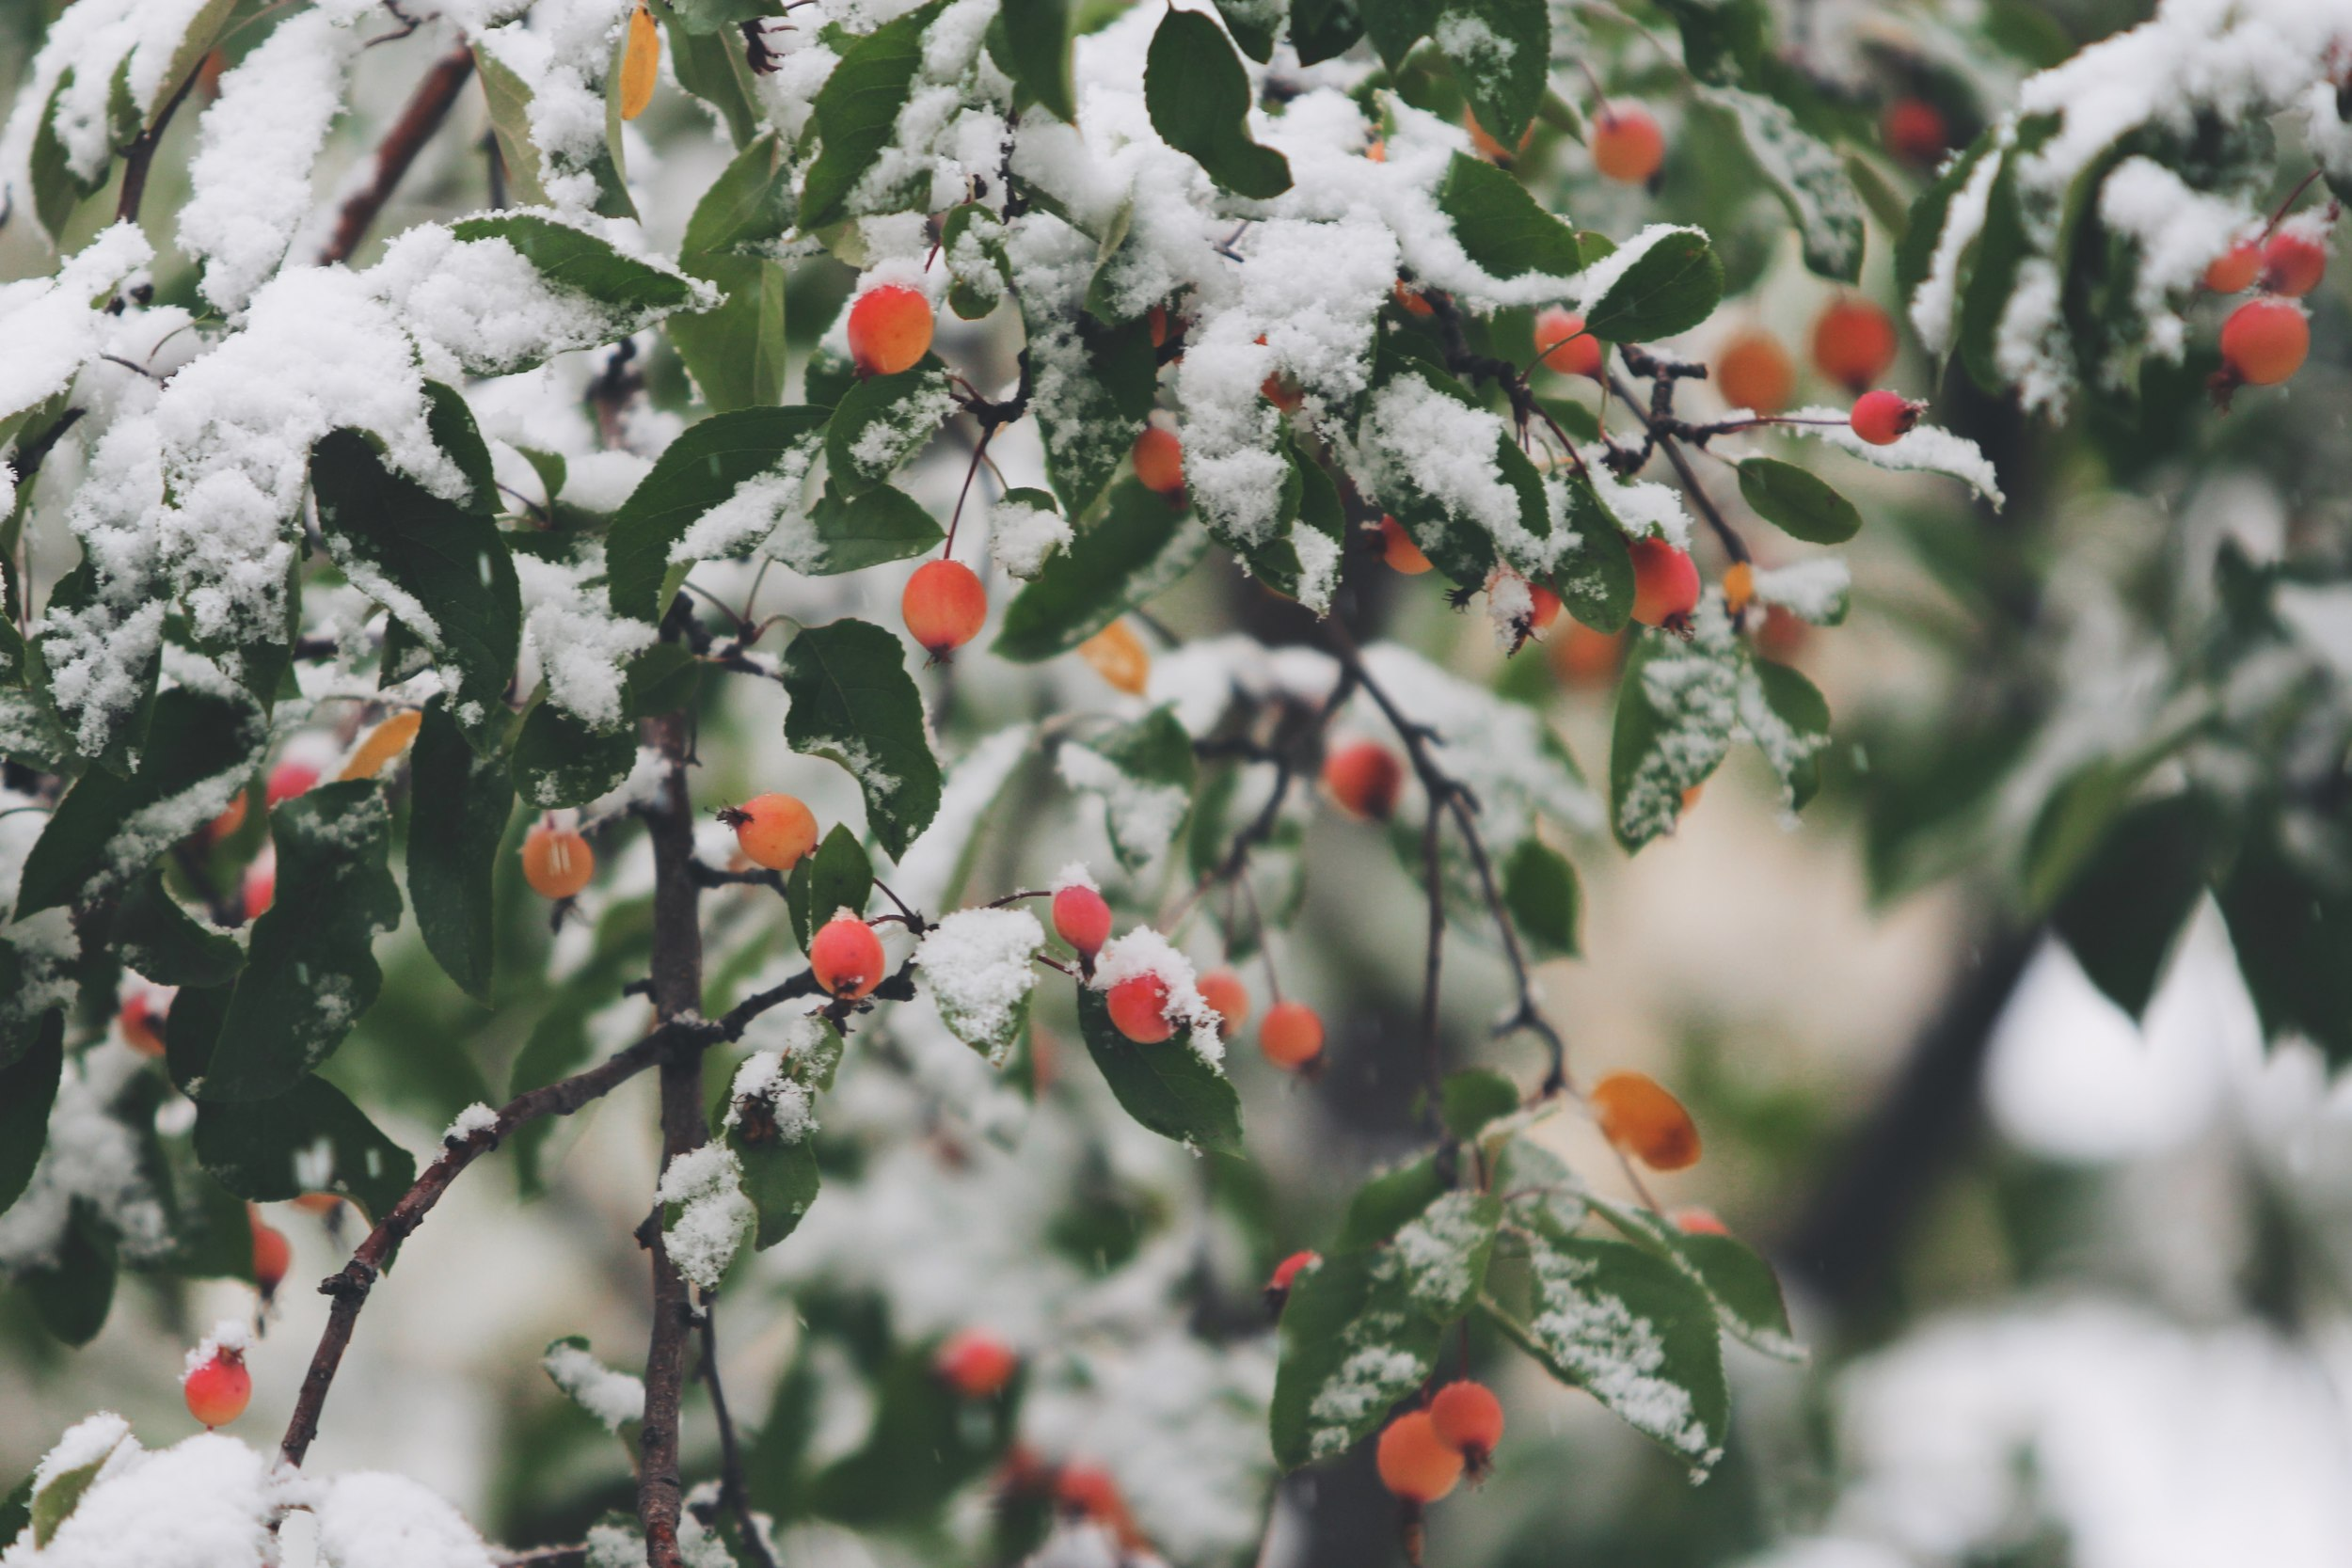 Rosehips in the snow. Photo by  John Price.